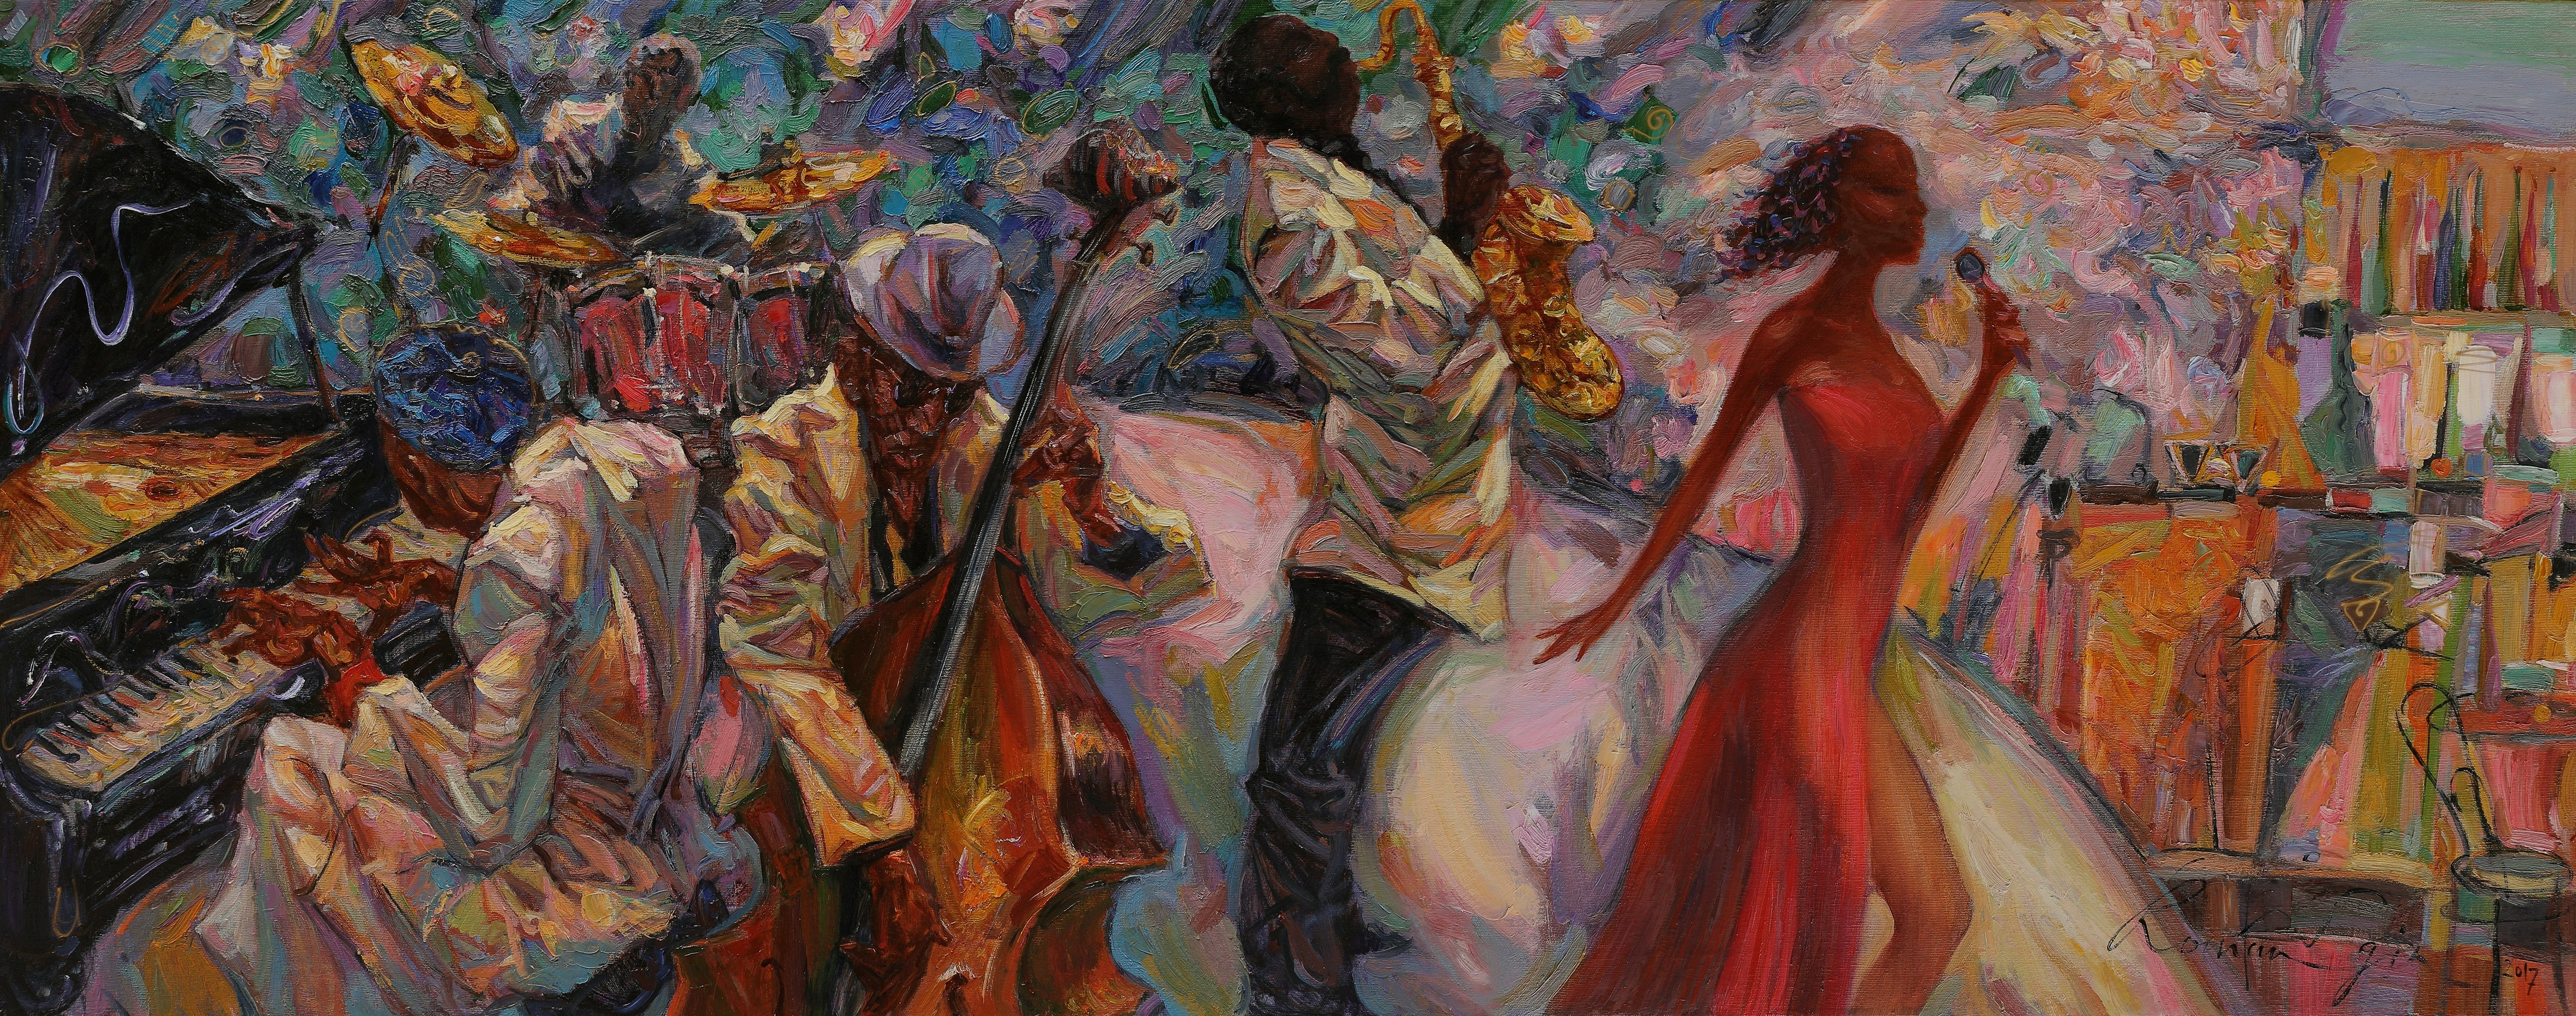 """An oil painting from the """"Sounds of Jazz"""" series by artist Roman Nogin. (Shutterstock Photo)"""